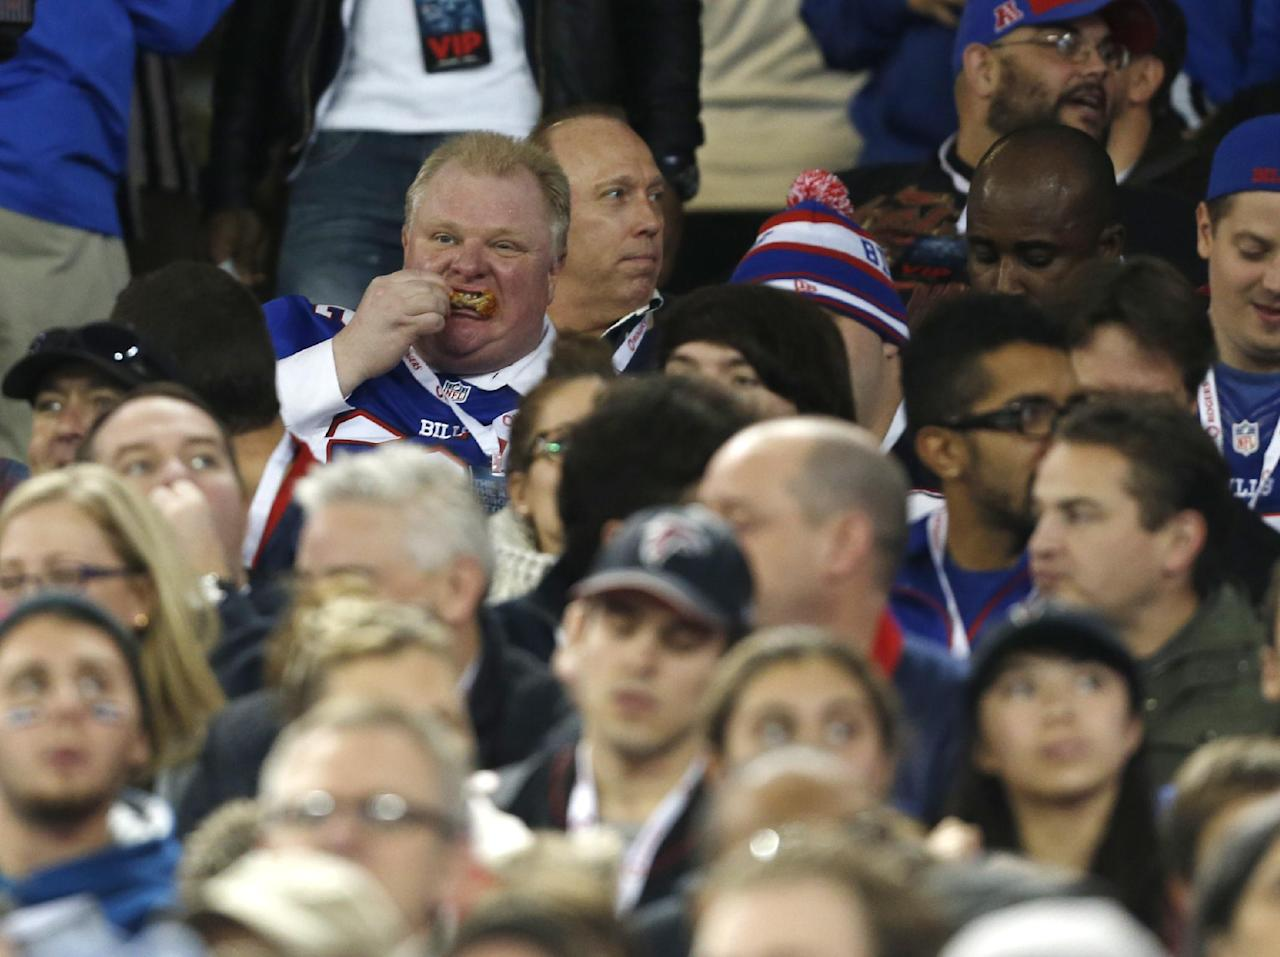 Toronto Mayor Rob Ford eats during the first half of an NFL football game between the Atlanta Falcons and the Buffalo Bills on Sunday, Dec. 1, 2013, in Toronto. (AP Photo/Gary Wiepert)